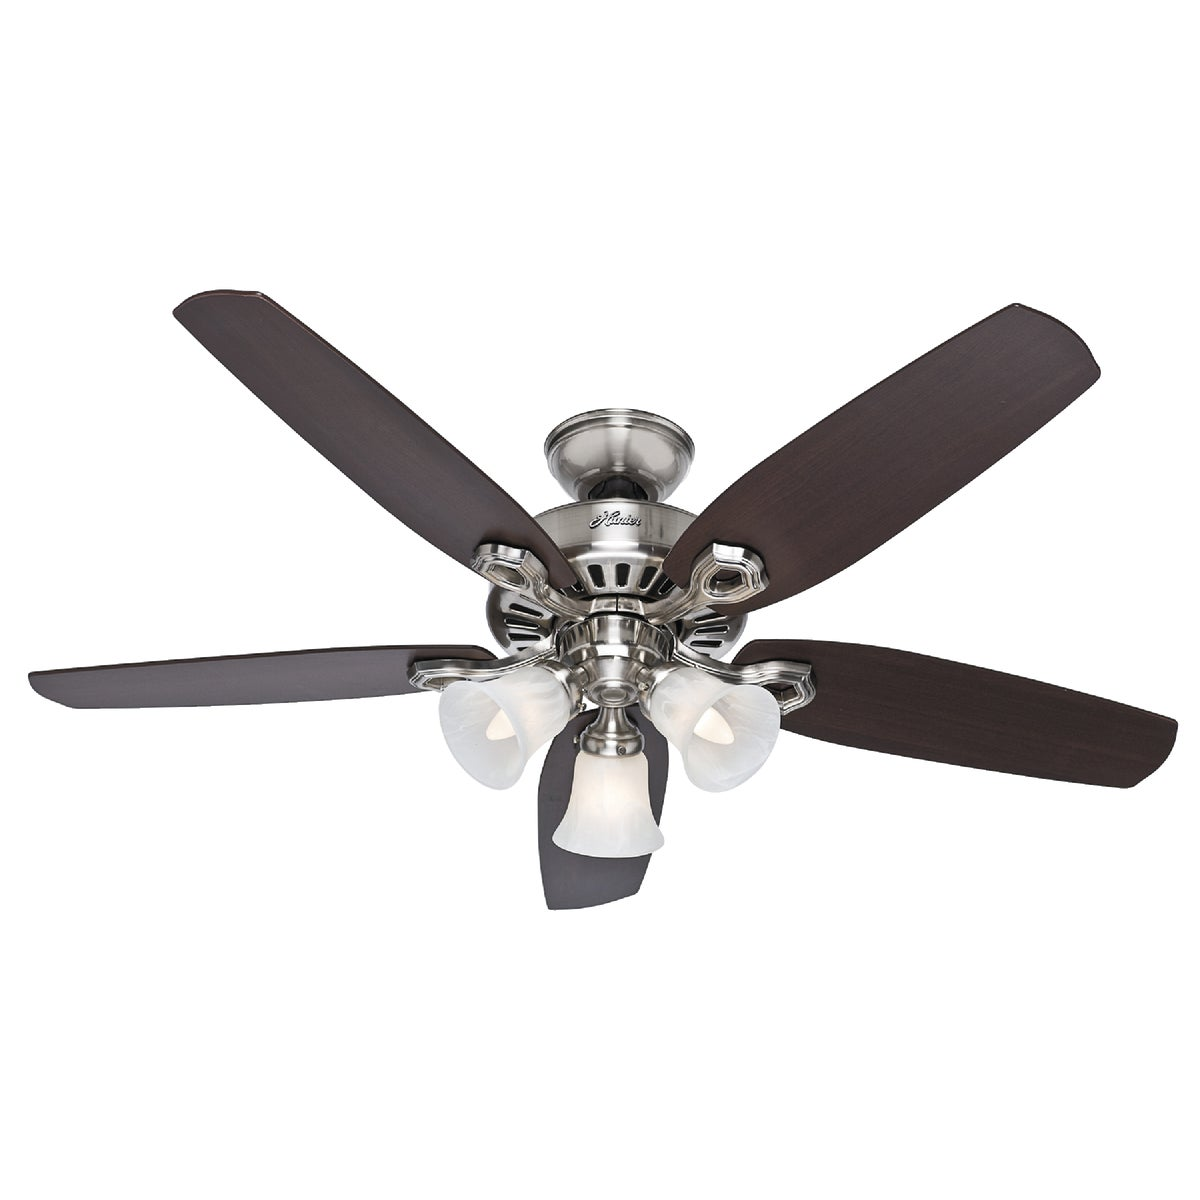 "52"" 5-BLADE CEILING FAN - 53237 by Hunter Fan Co"